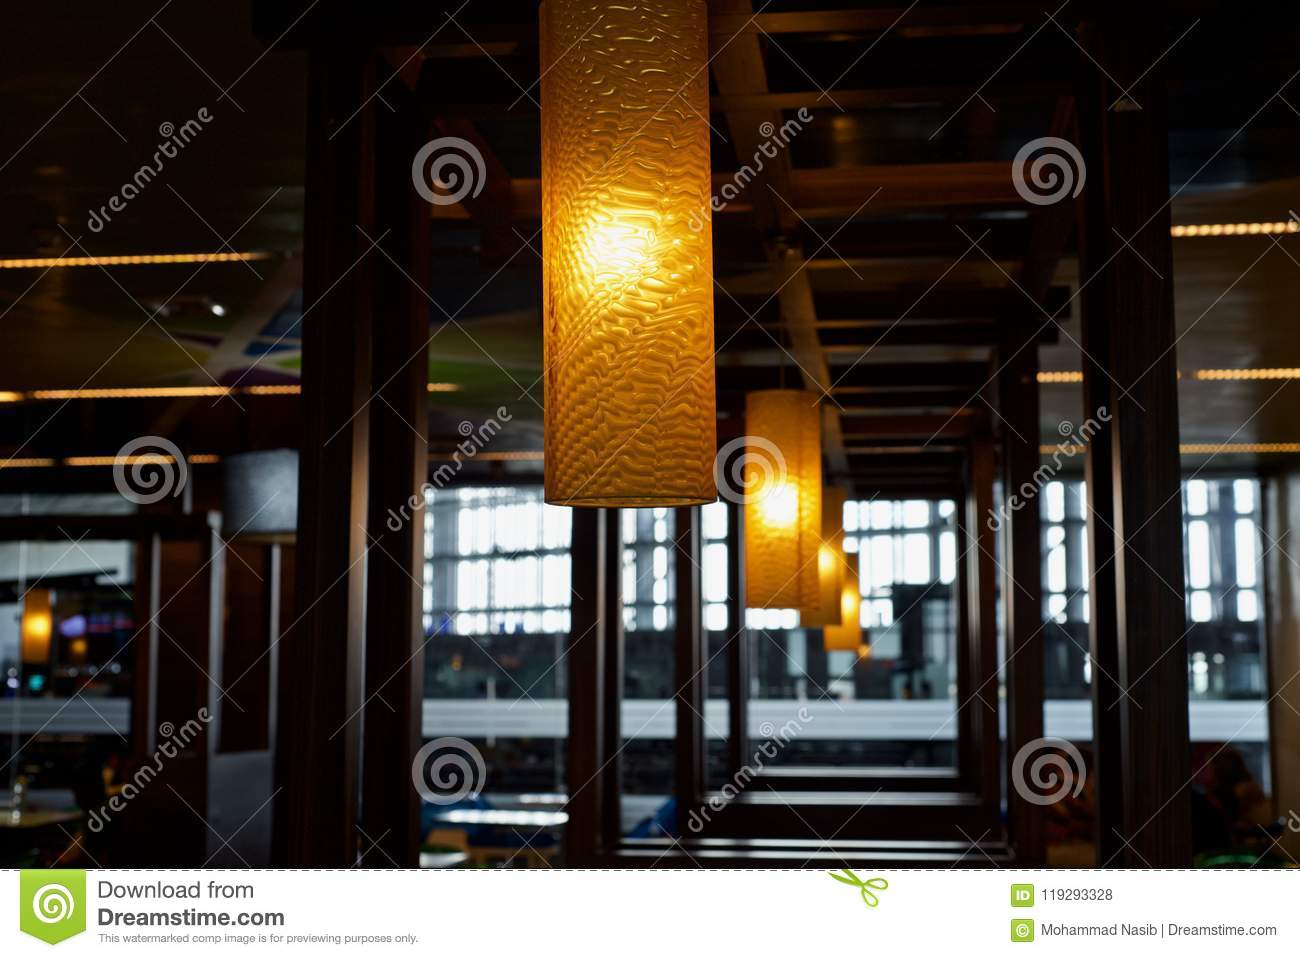 Download Beautiful Interior Decoration Lights  Unique Photo Stock Photo - Image of object, lights: 119293328